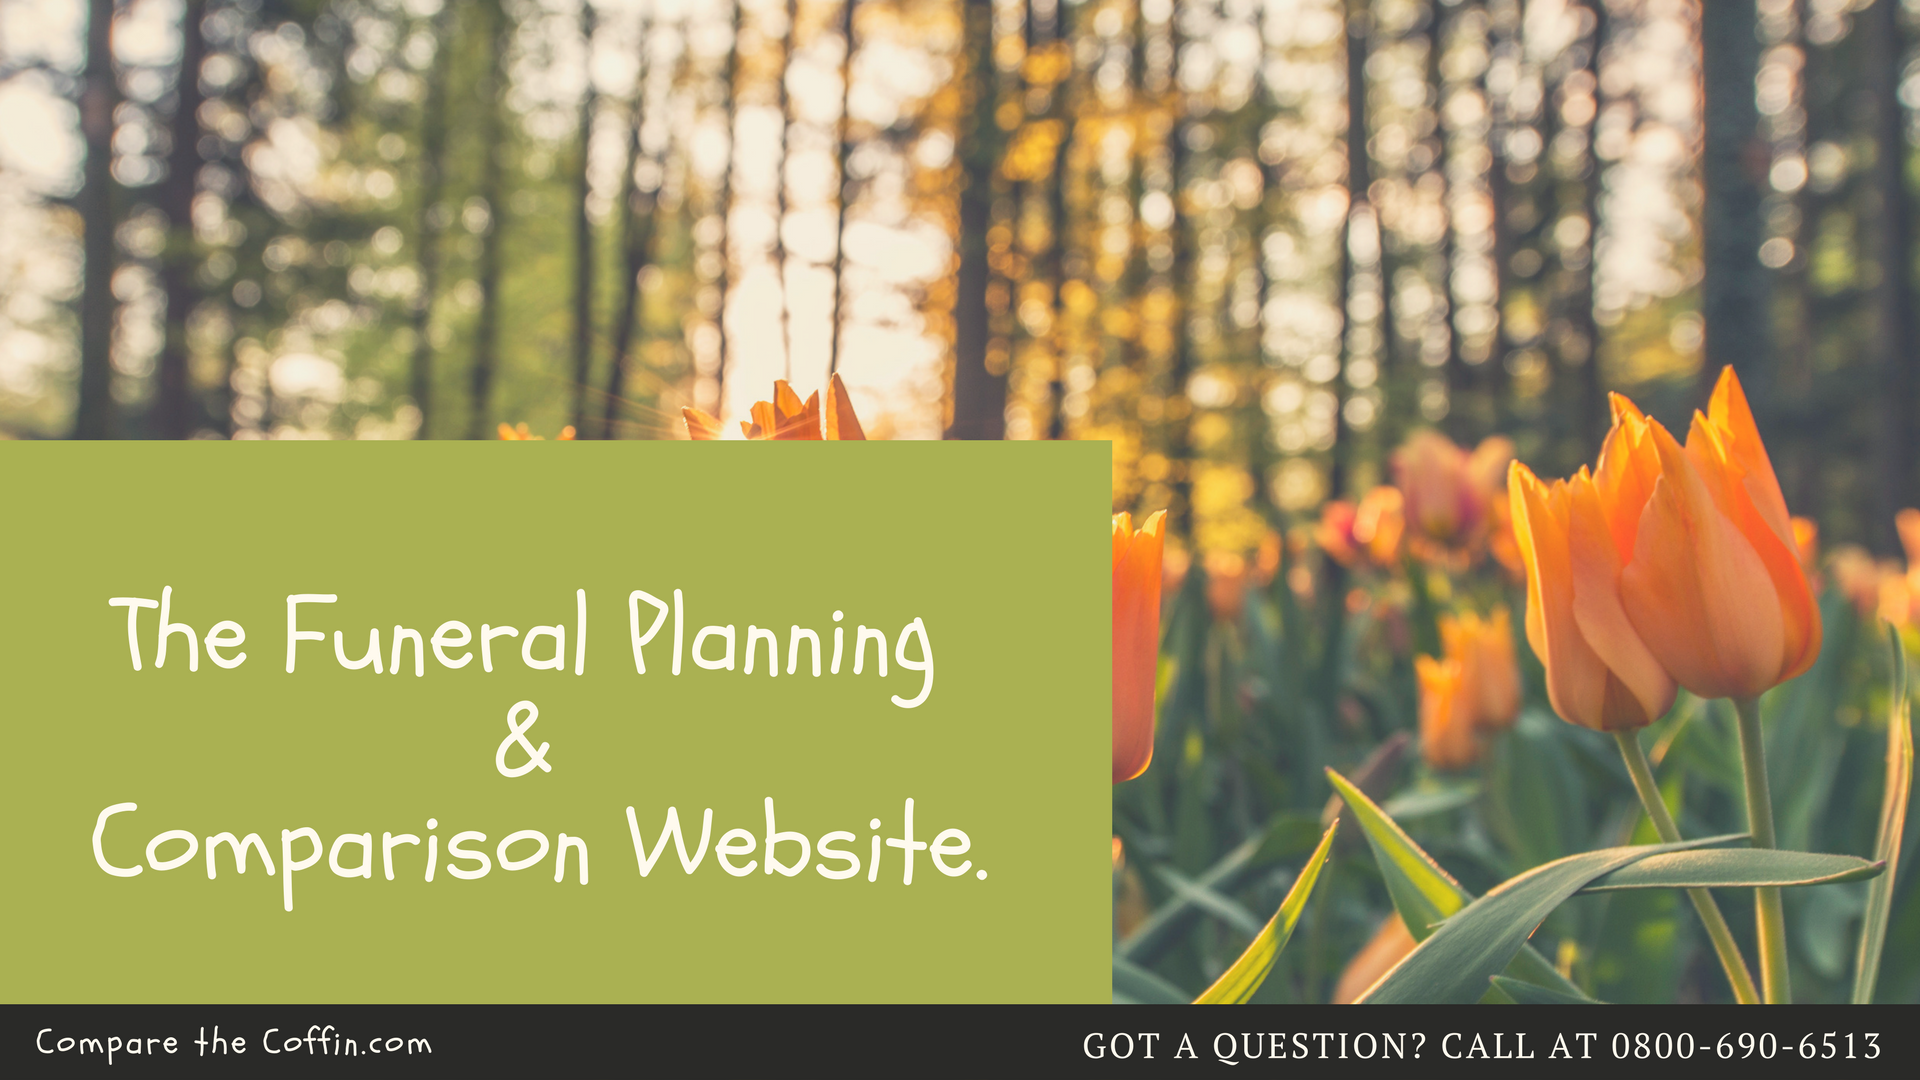 How Do You Plan A Funeral for A Loved One?